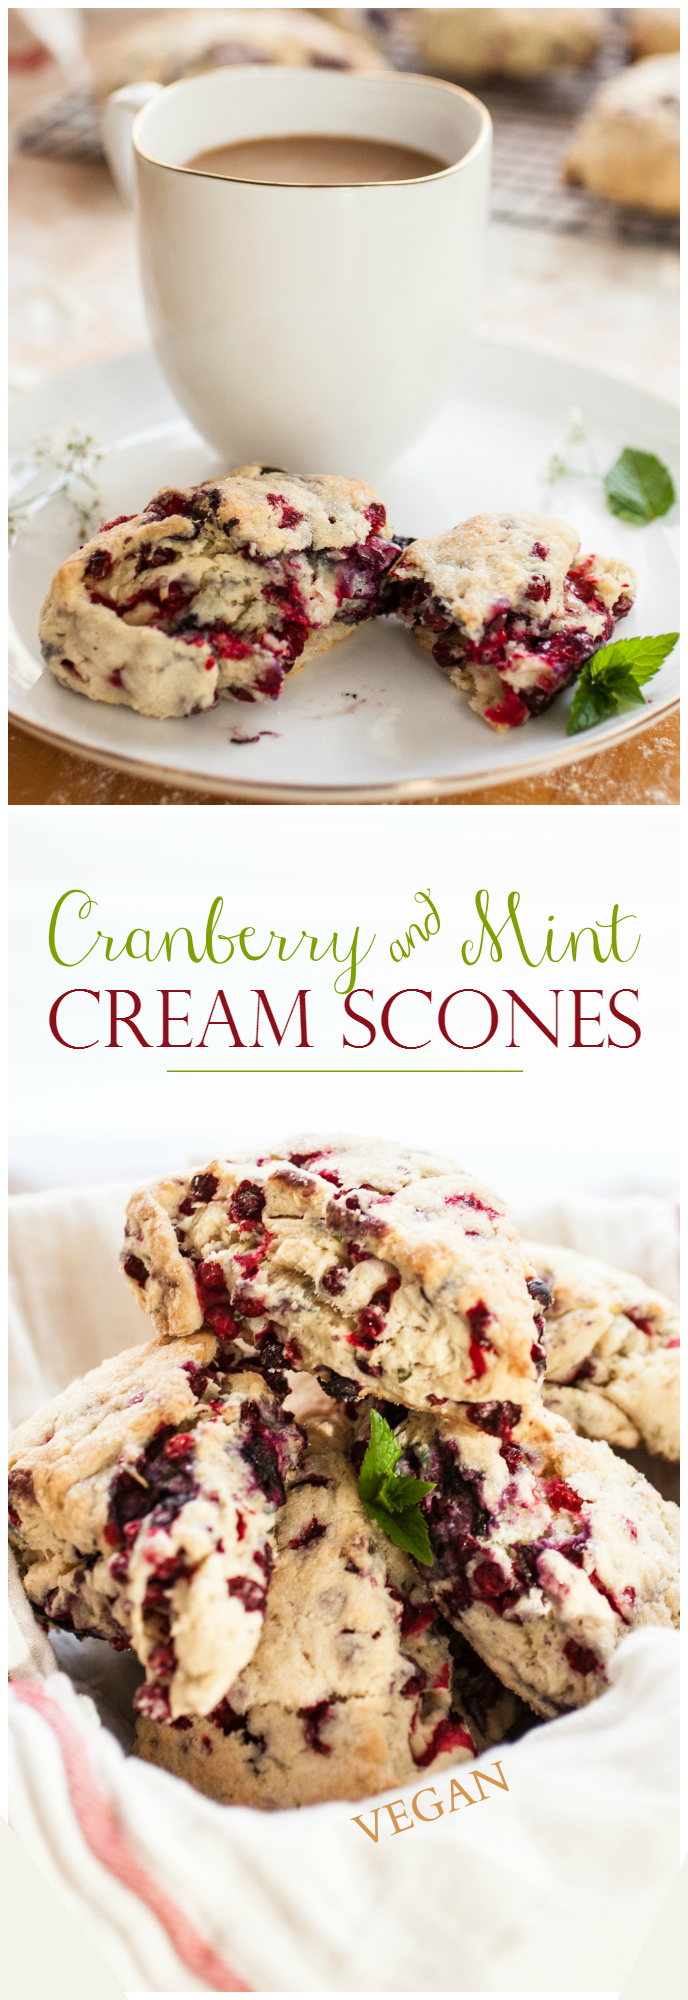 Produce On Parade - Cranberry & Mint Cream Scones - These flaky, mildly sweet, and deliciously creamy scones are filled with fresh mint and tart cranberries.